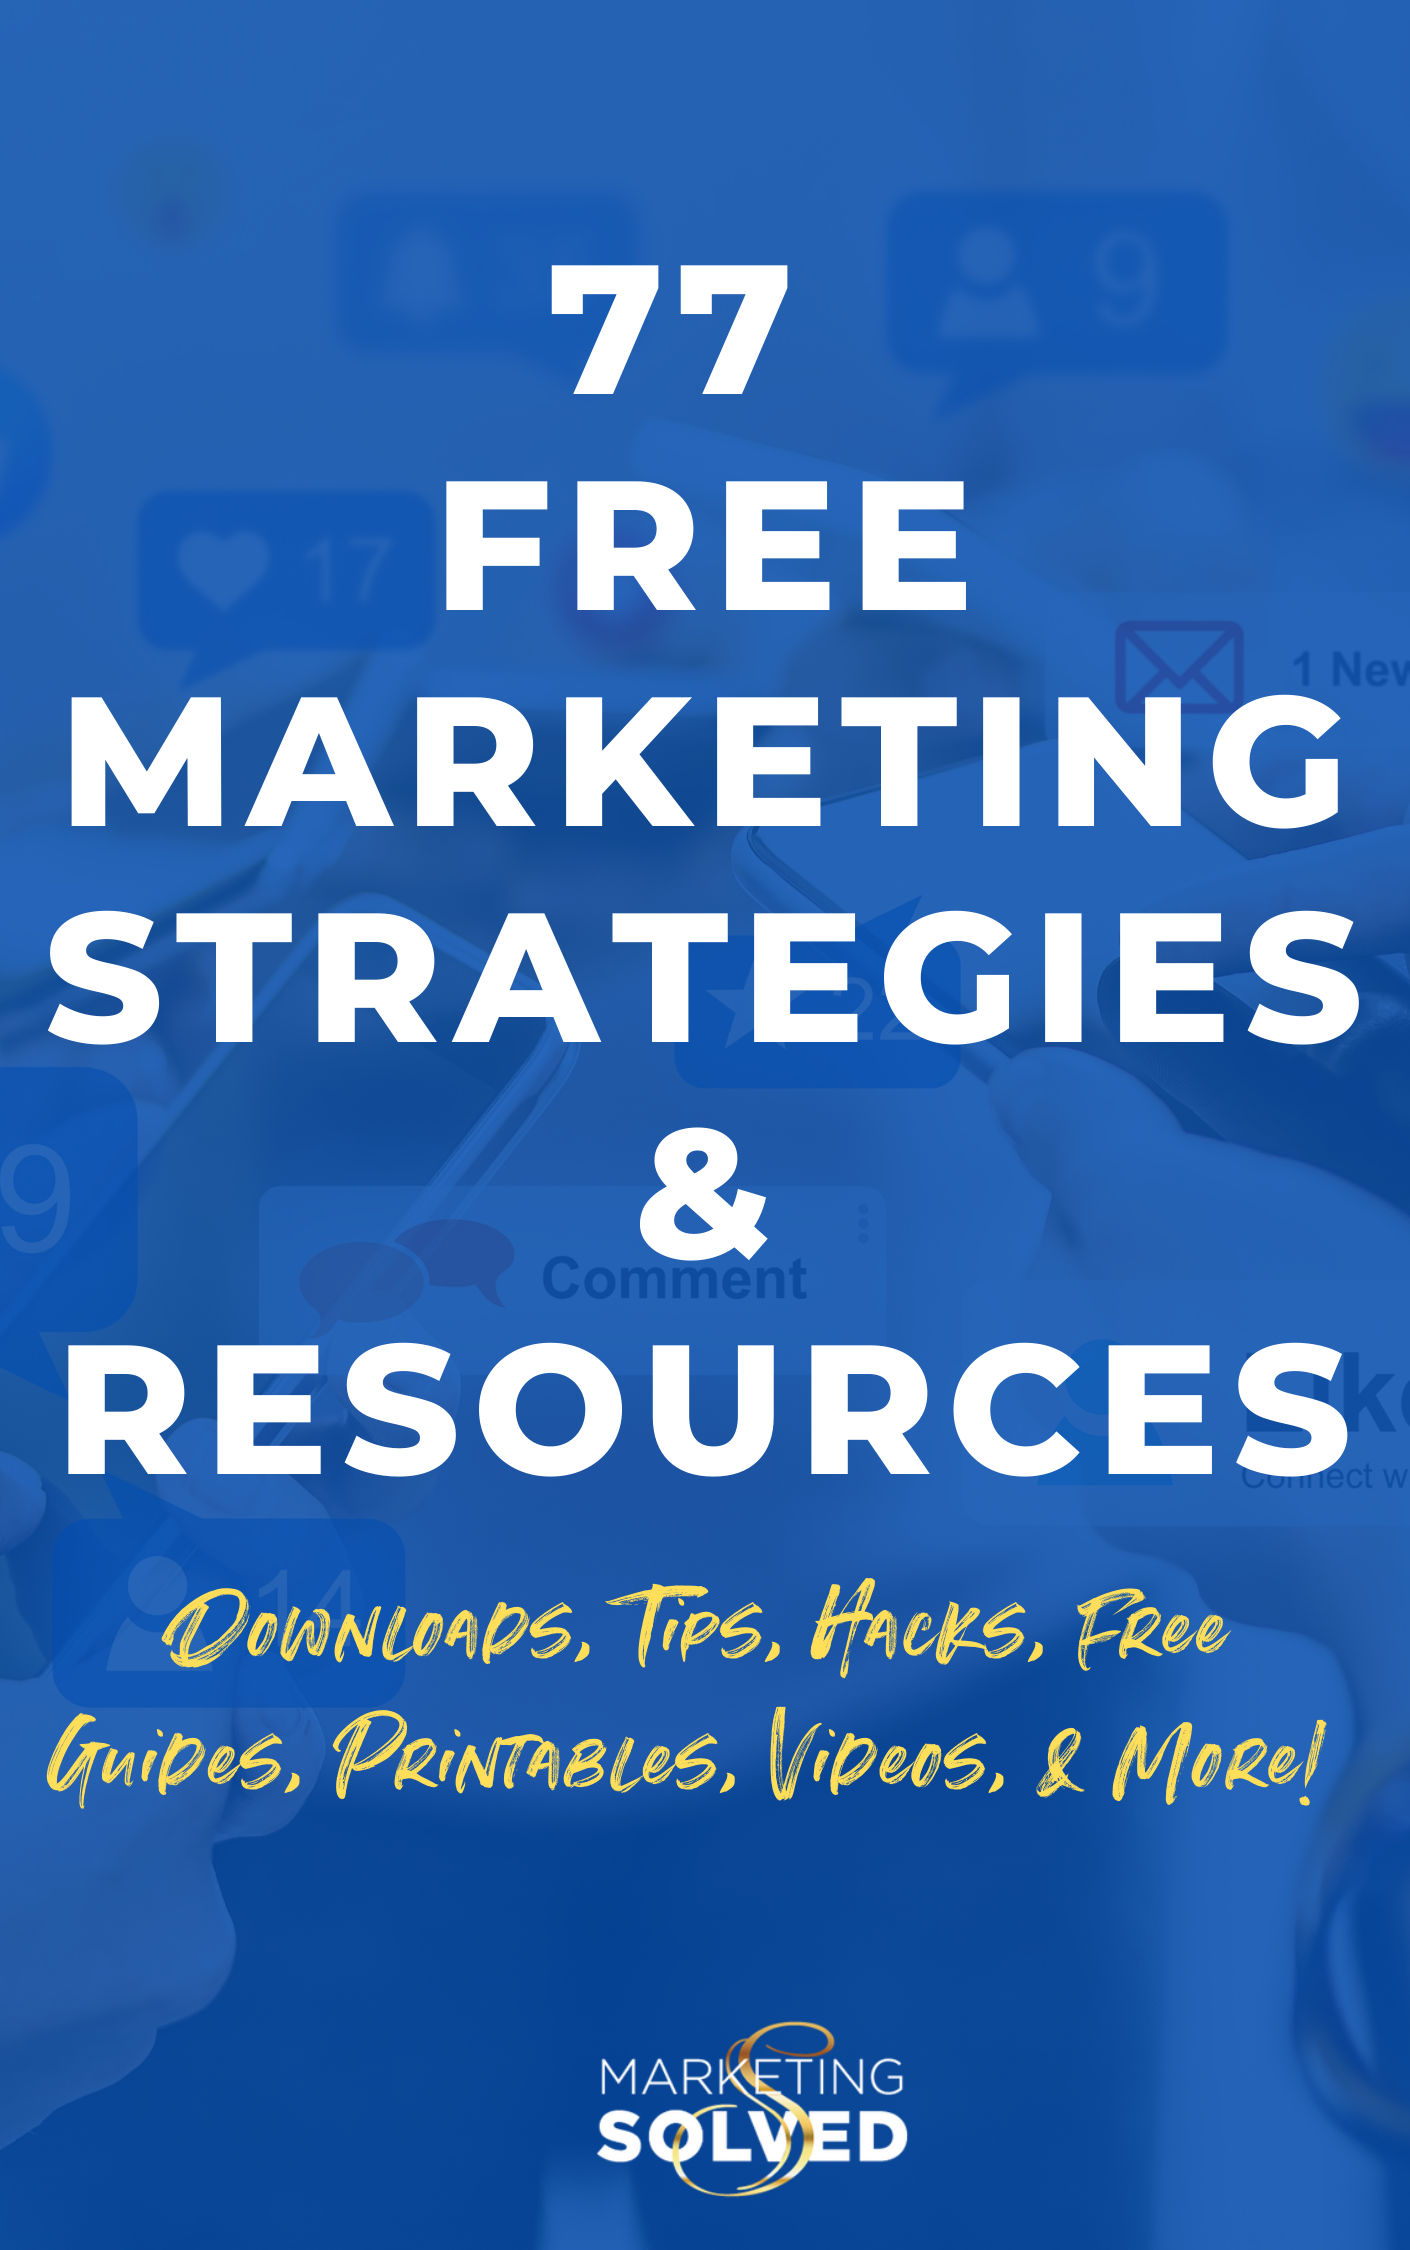 77 Small Business Marketing Strategies and Resource. Marketing Printables, Marketing Hacks, Marketing Checklists, Marketing Guides, Marketing Tutorials, Marketing Videos and more. #MarketingStrategies